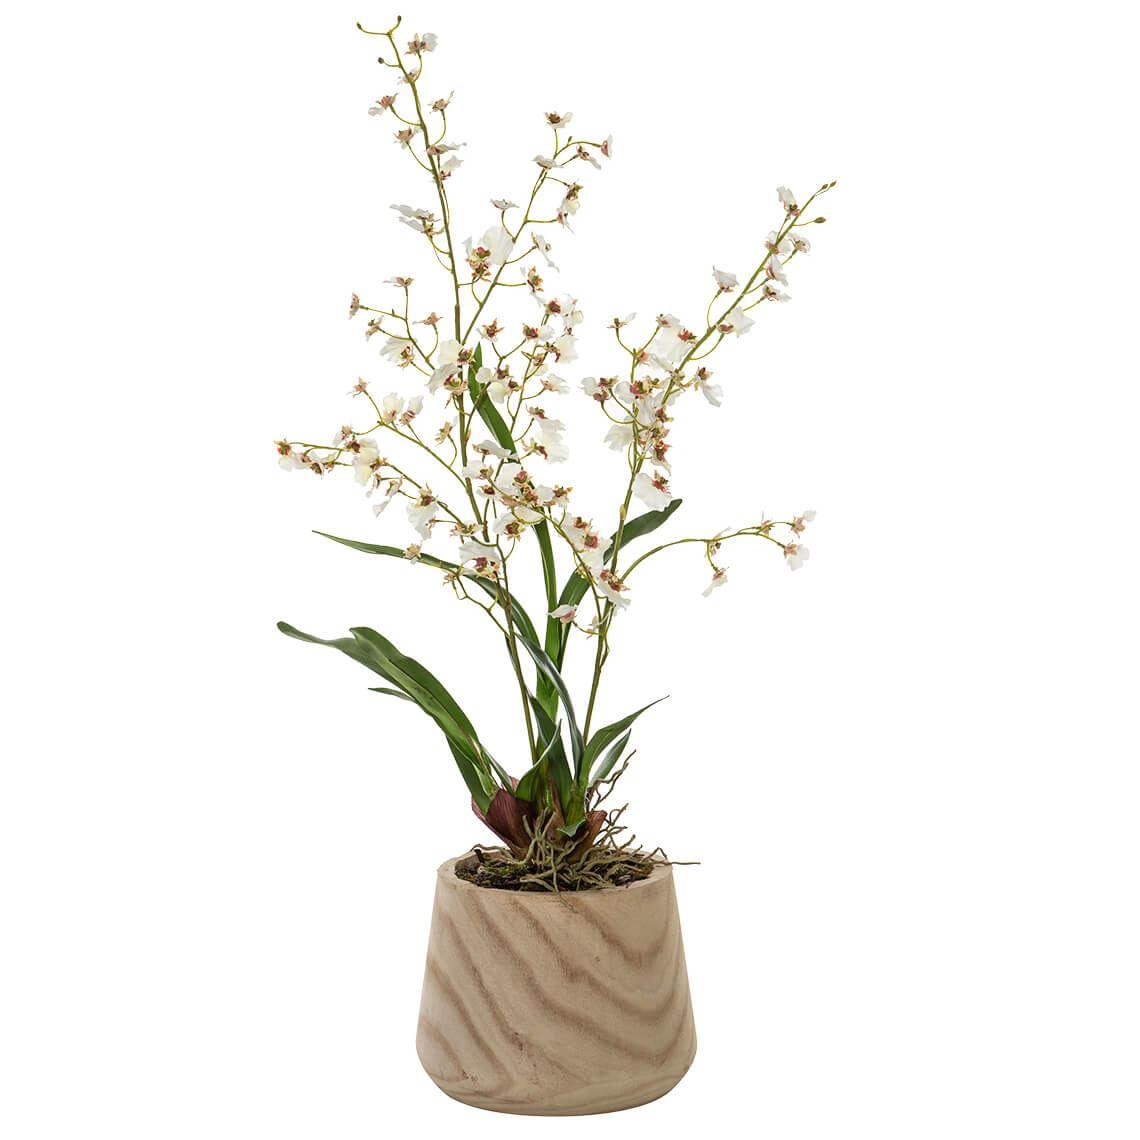 Dancing Orchid Basket Size W 28cm x D 45cm x H 73cm in Green Plastic/Wood Freedom